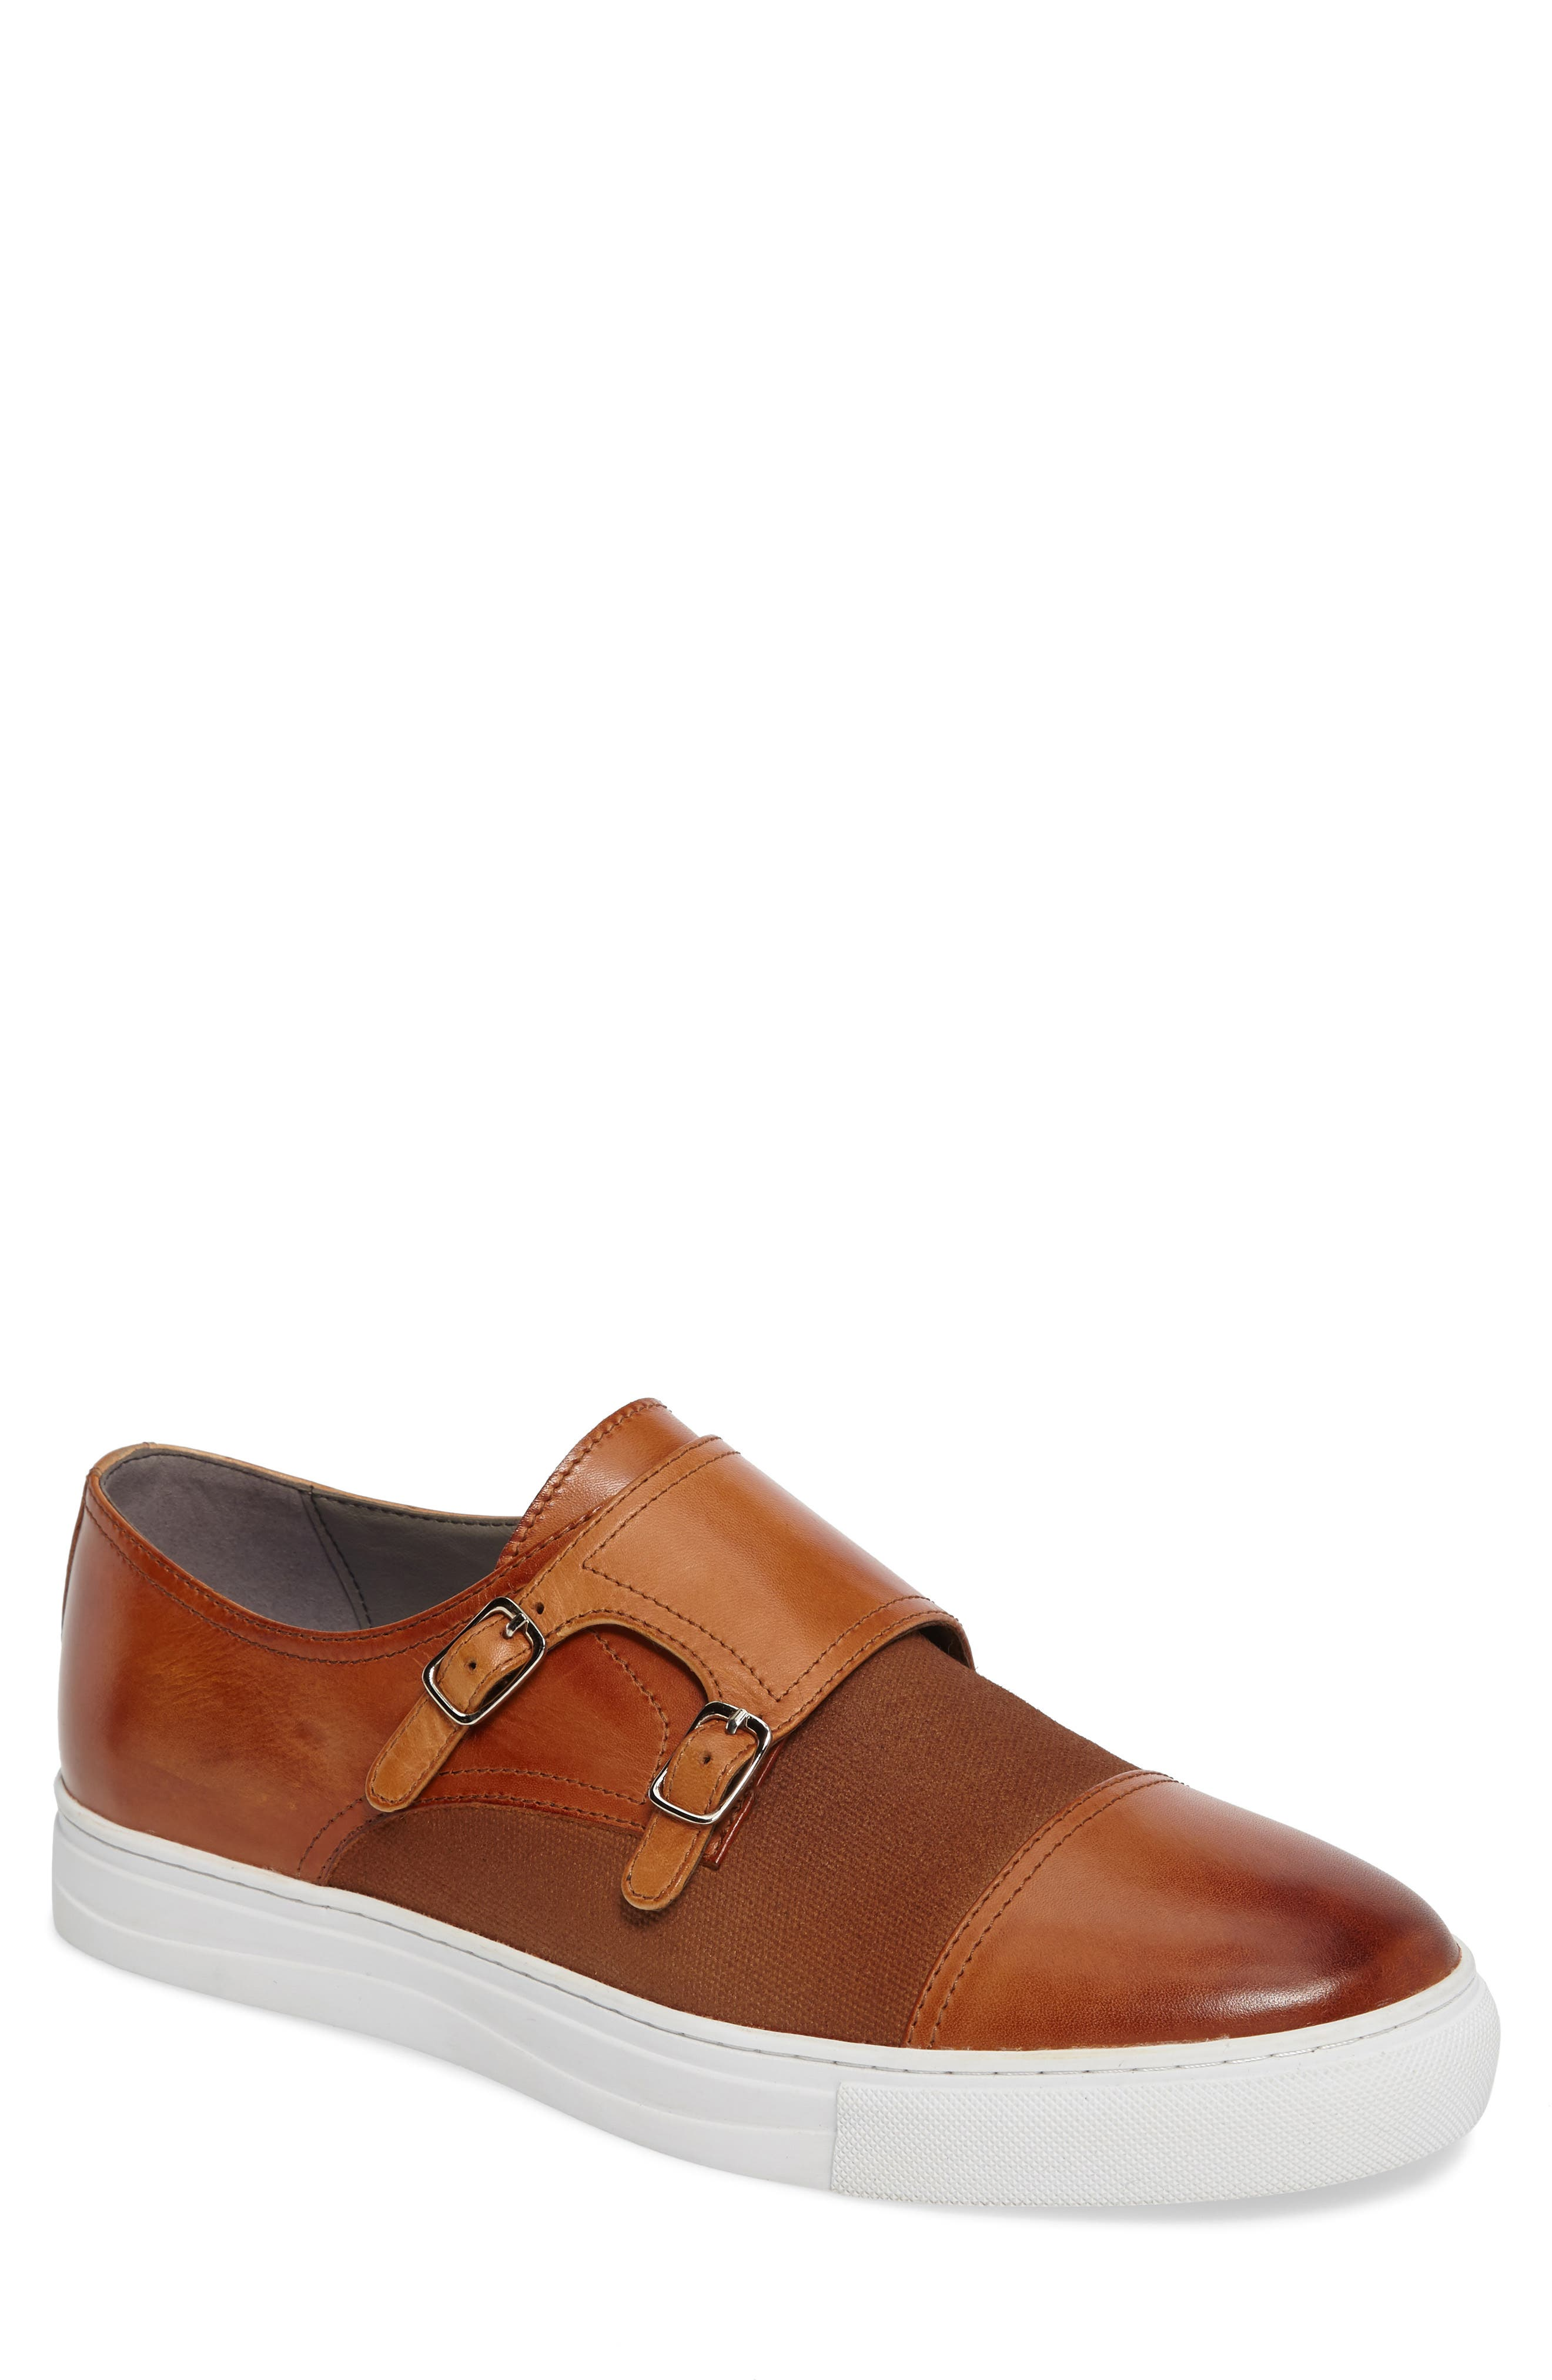 Finchley Sneaker,                         Main,                         color, 211